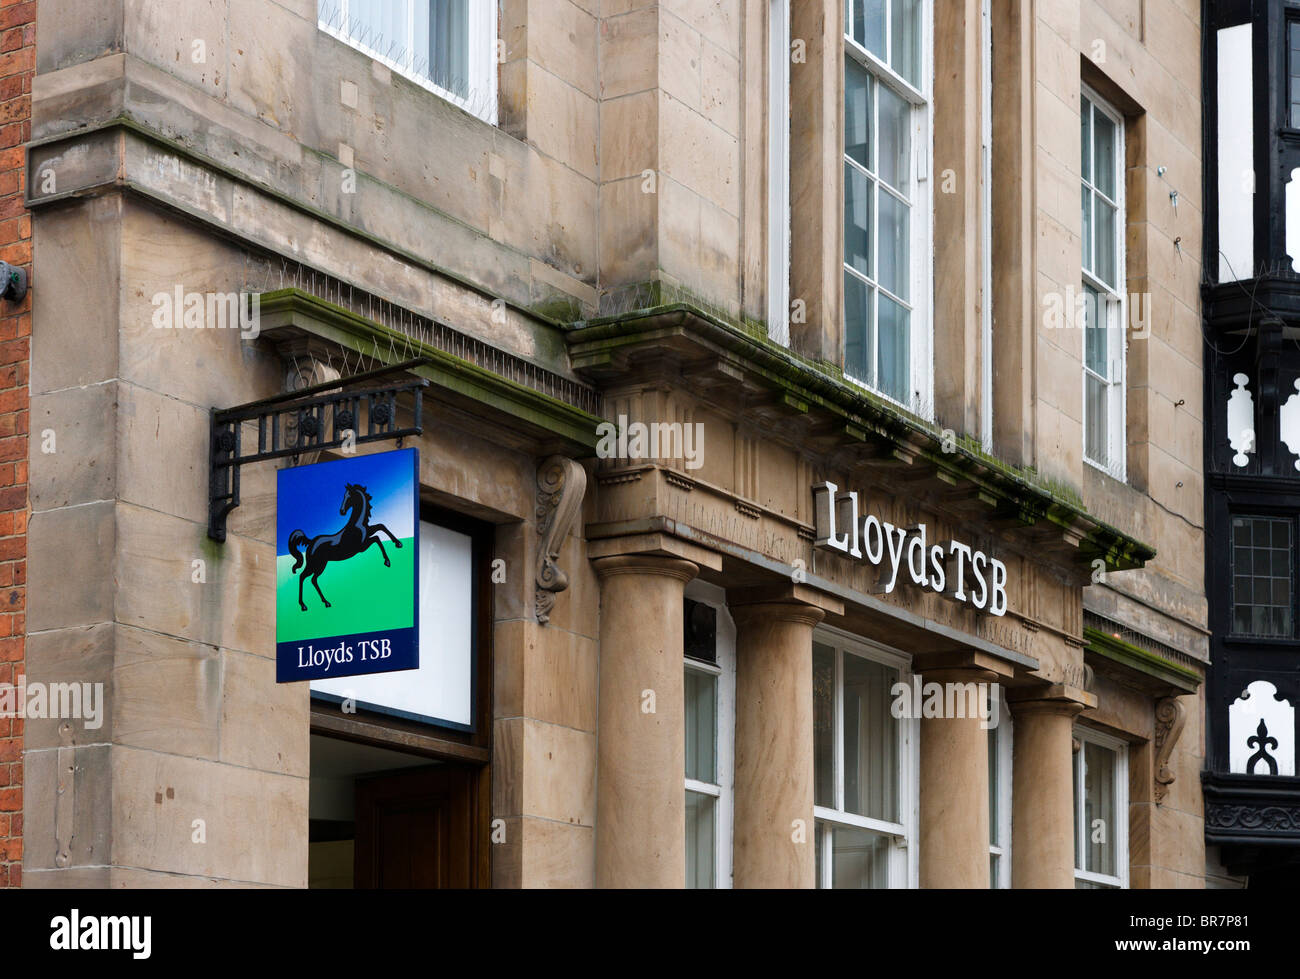 Lloyds TSB bank in Chester town centre, Cheshire, England, UK - Stock Image